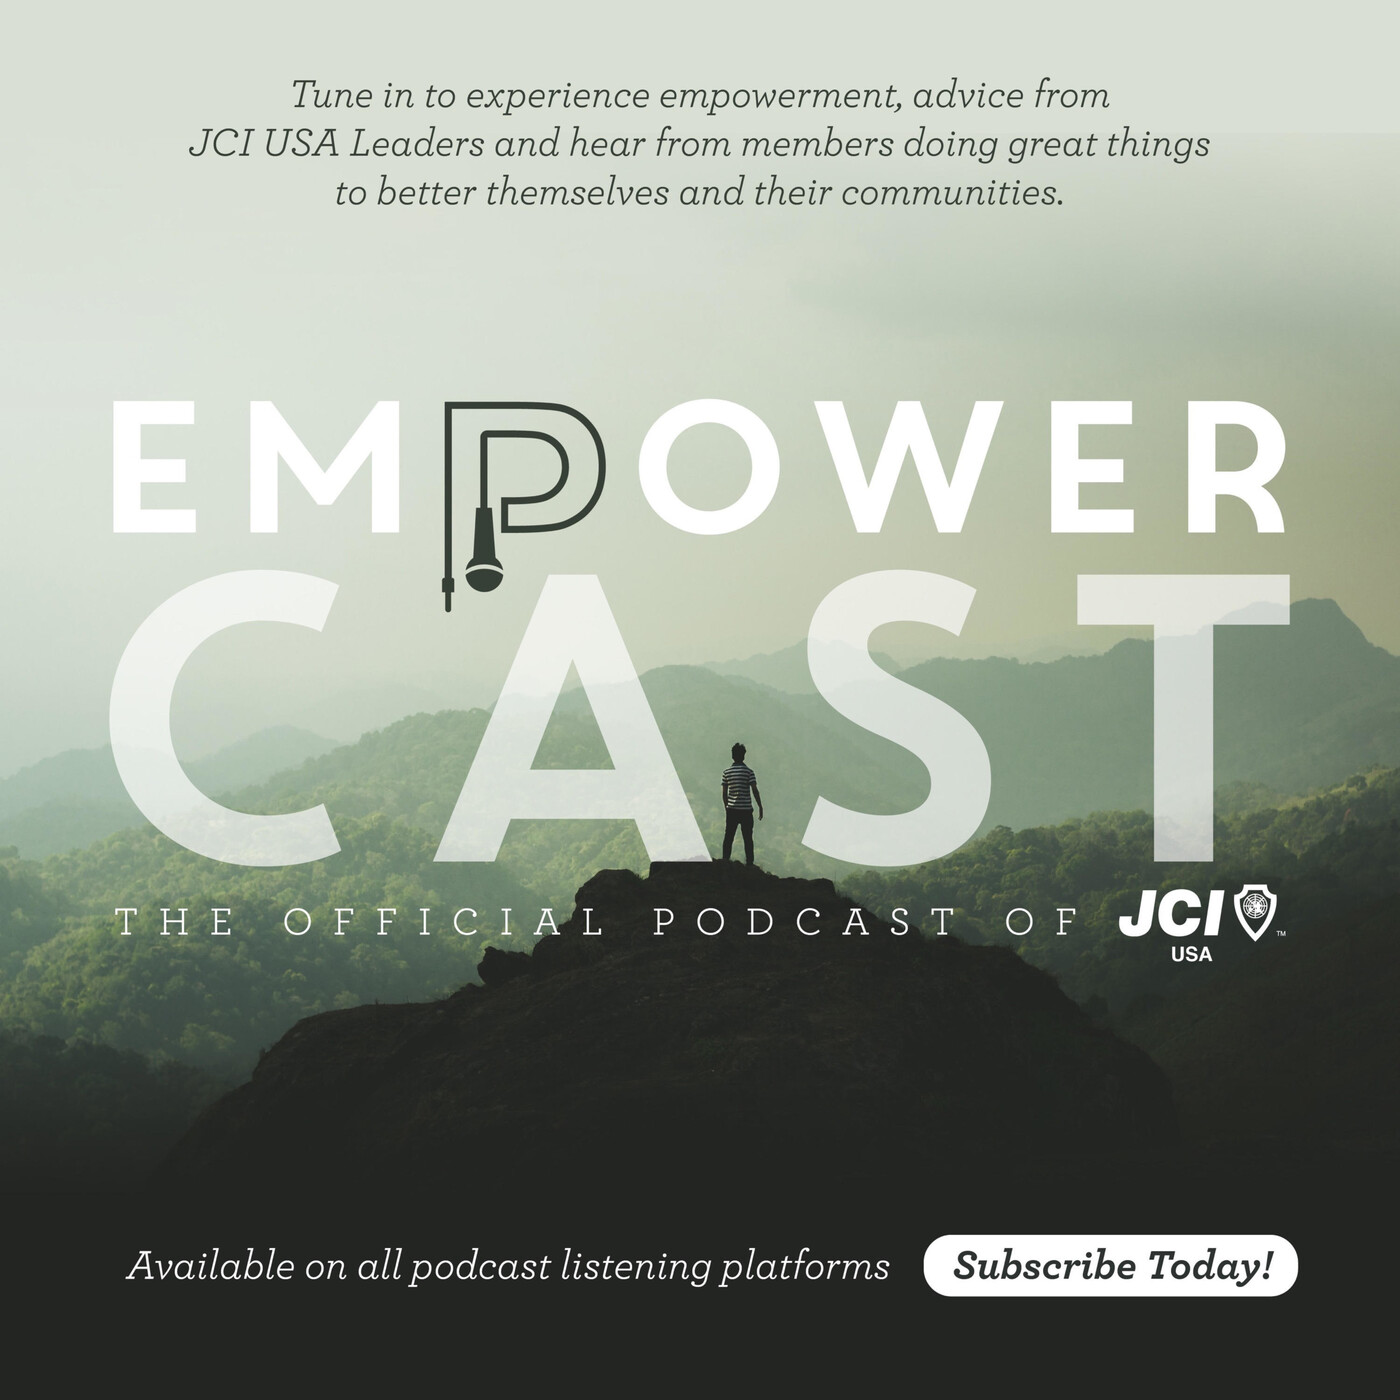 EmpowerCAST joins Leadership LIVE!